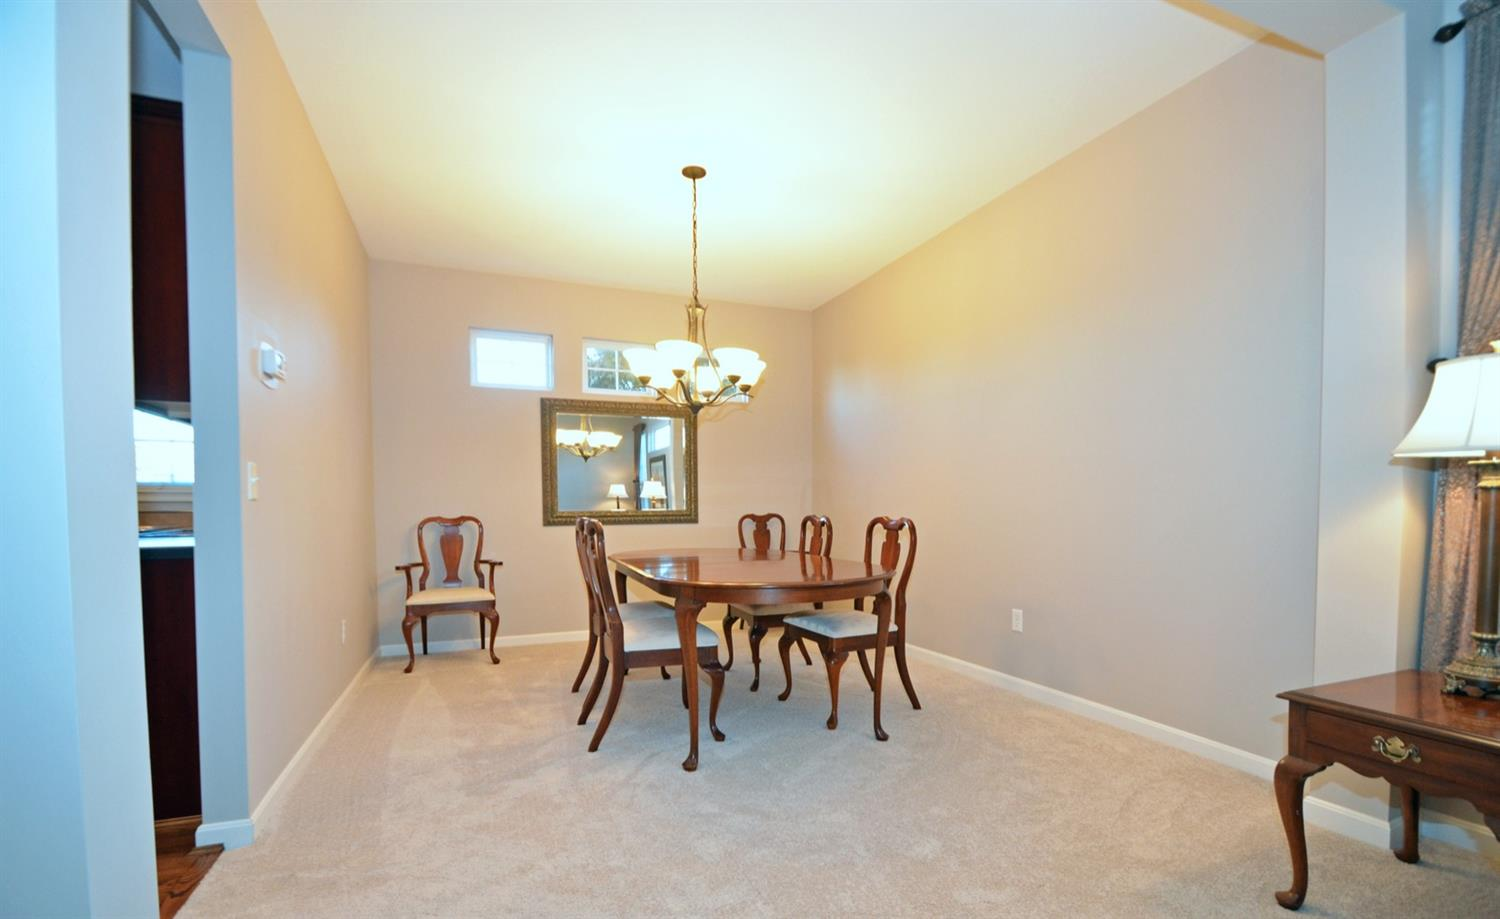 How wonderful to have a formal dining room. A room that is often neglected in such an open plan home.